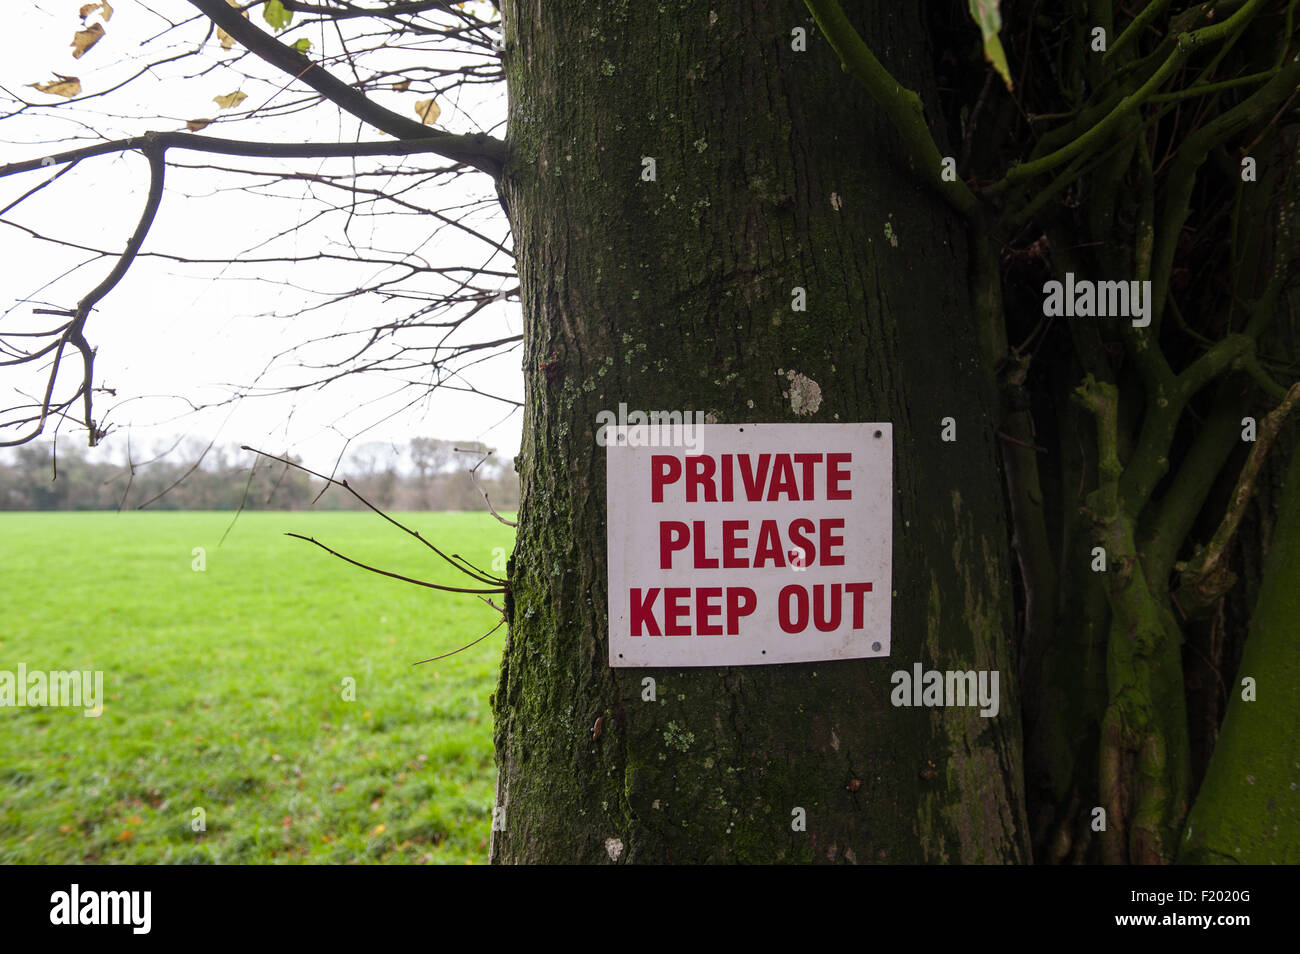 'Private Please Keep Out' sign in red on white nailed to a tree beside a grassy field. Dorset, England. - Stock Image